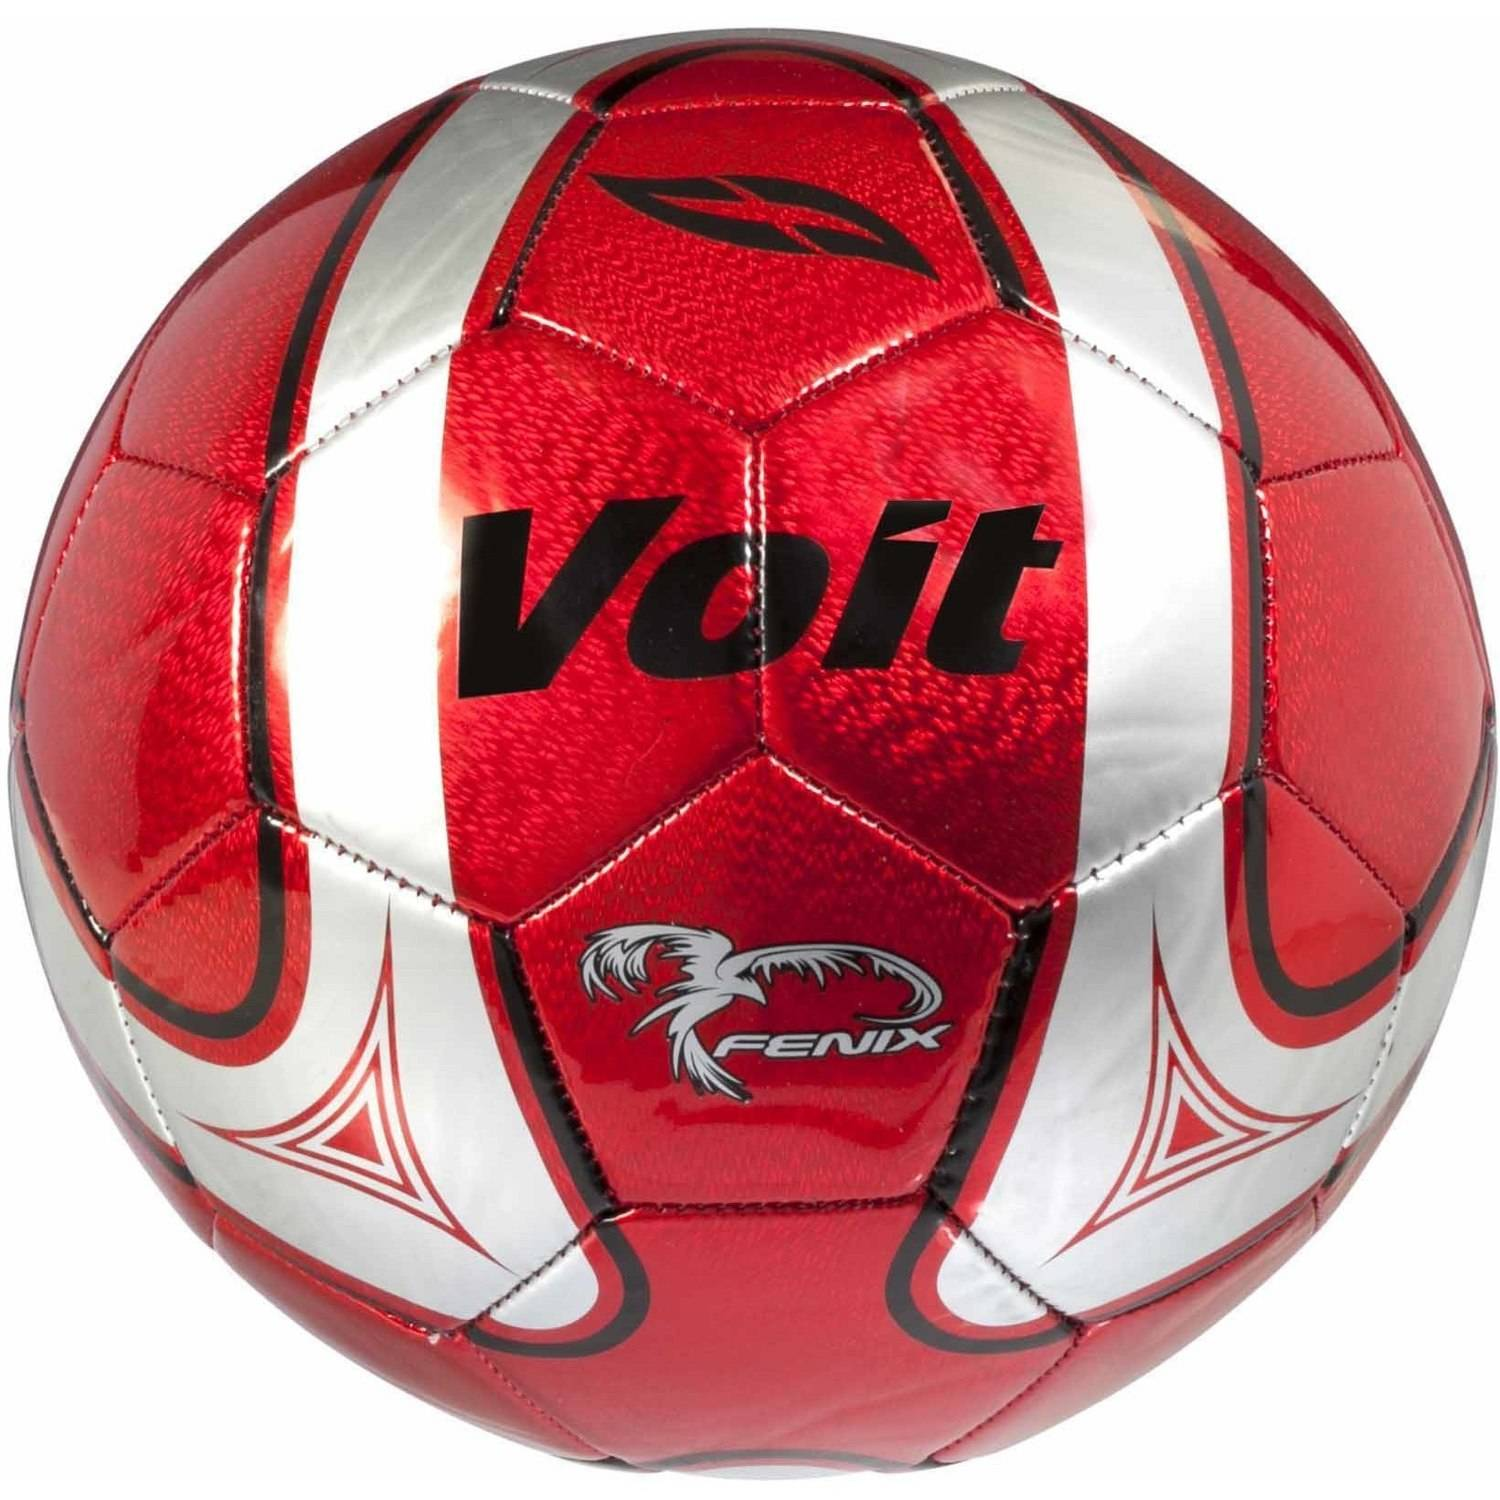 Generic Voit Size 5 Fenix Soccer Ball, Deflated, Red and Silver